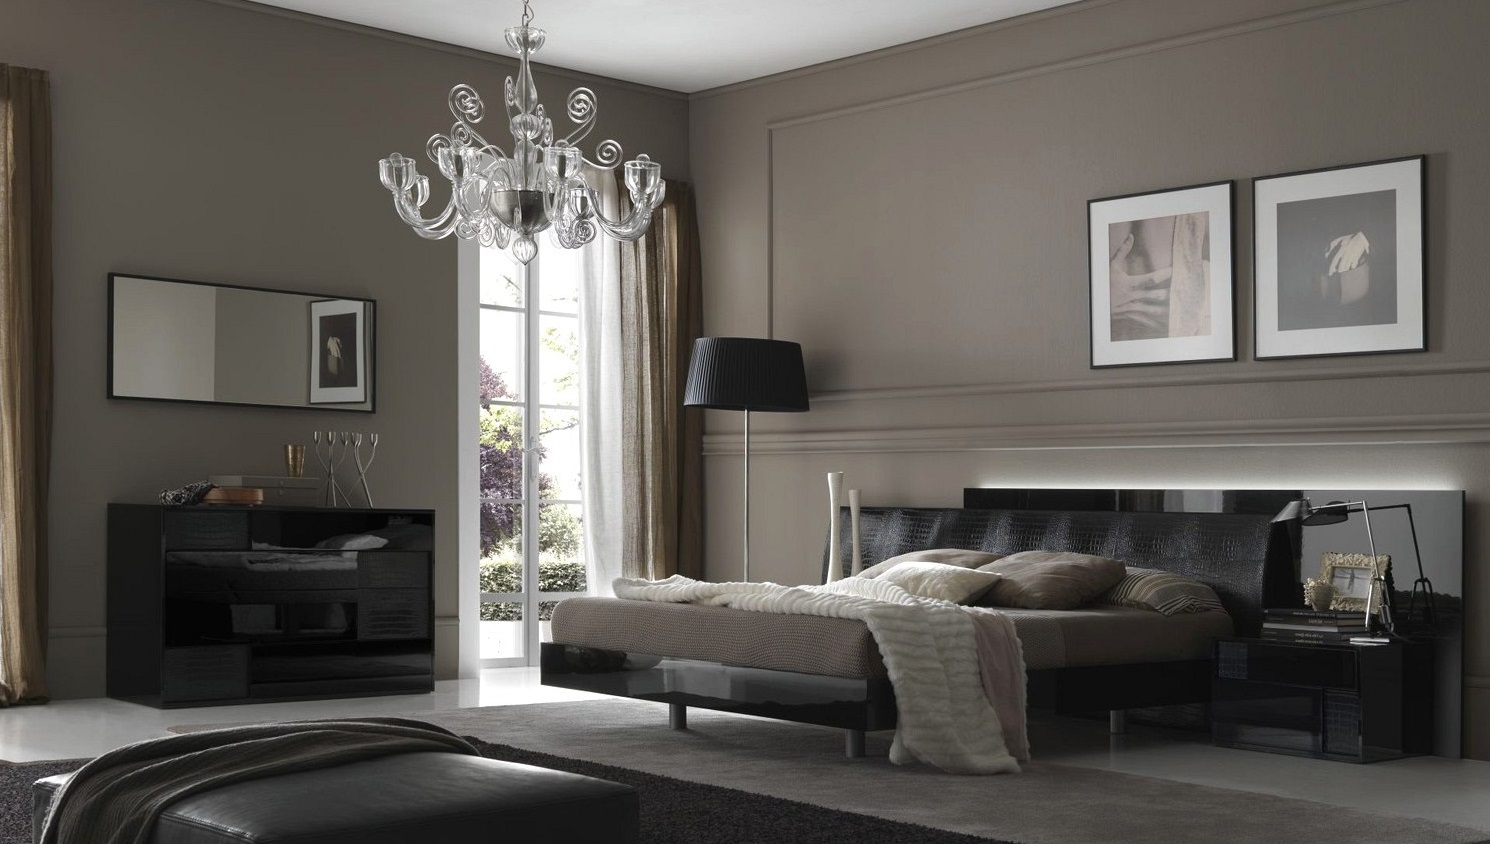 quelle couleur va avec le gris conseils pour ne pas. Black Bedroom Furniture Sets. Home Design Ideas